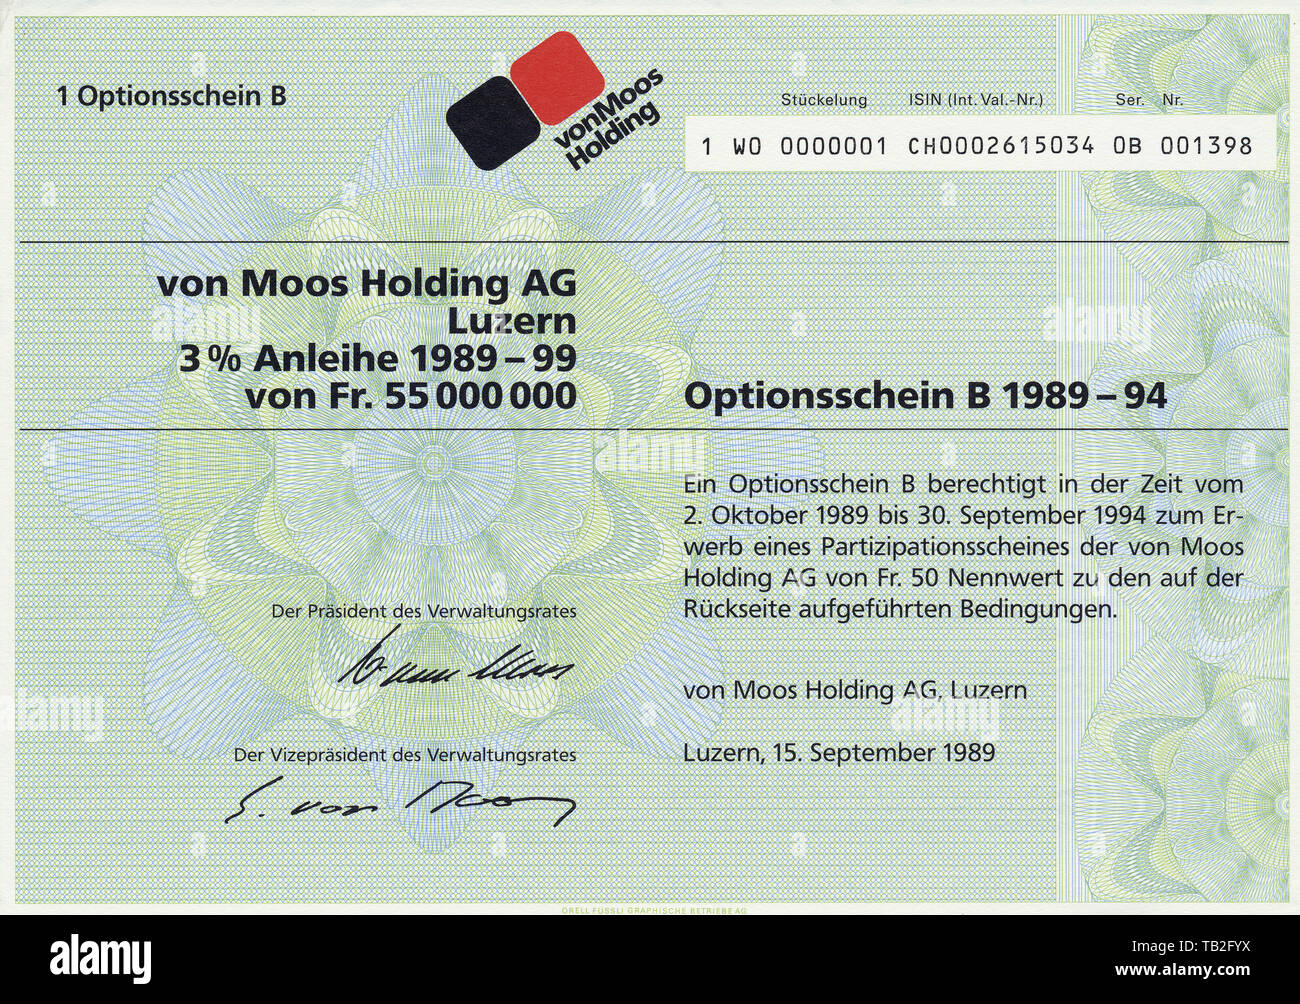 Historic share certificate from Swiss, bearer warrant in Swiss Francs, holding company for acquisition, management and sale of investments, Moss Holding AG, Lucerne, Wertpapier, Inhaber-Optionsschein in Schweizer Franken, Holding für den Erwerb, Verwaltung und Veräusserung von Beteiligungen; von Moos Holding AG, Luzern, 1985, Schweiz, Europa - Stock Image